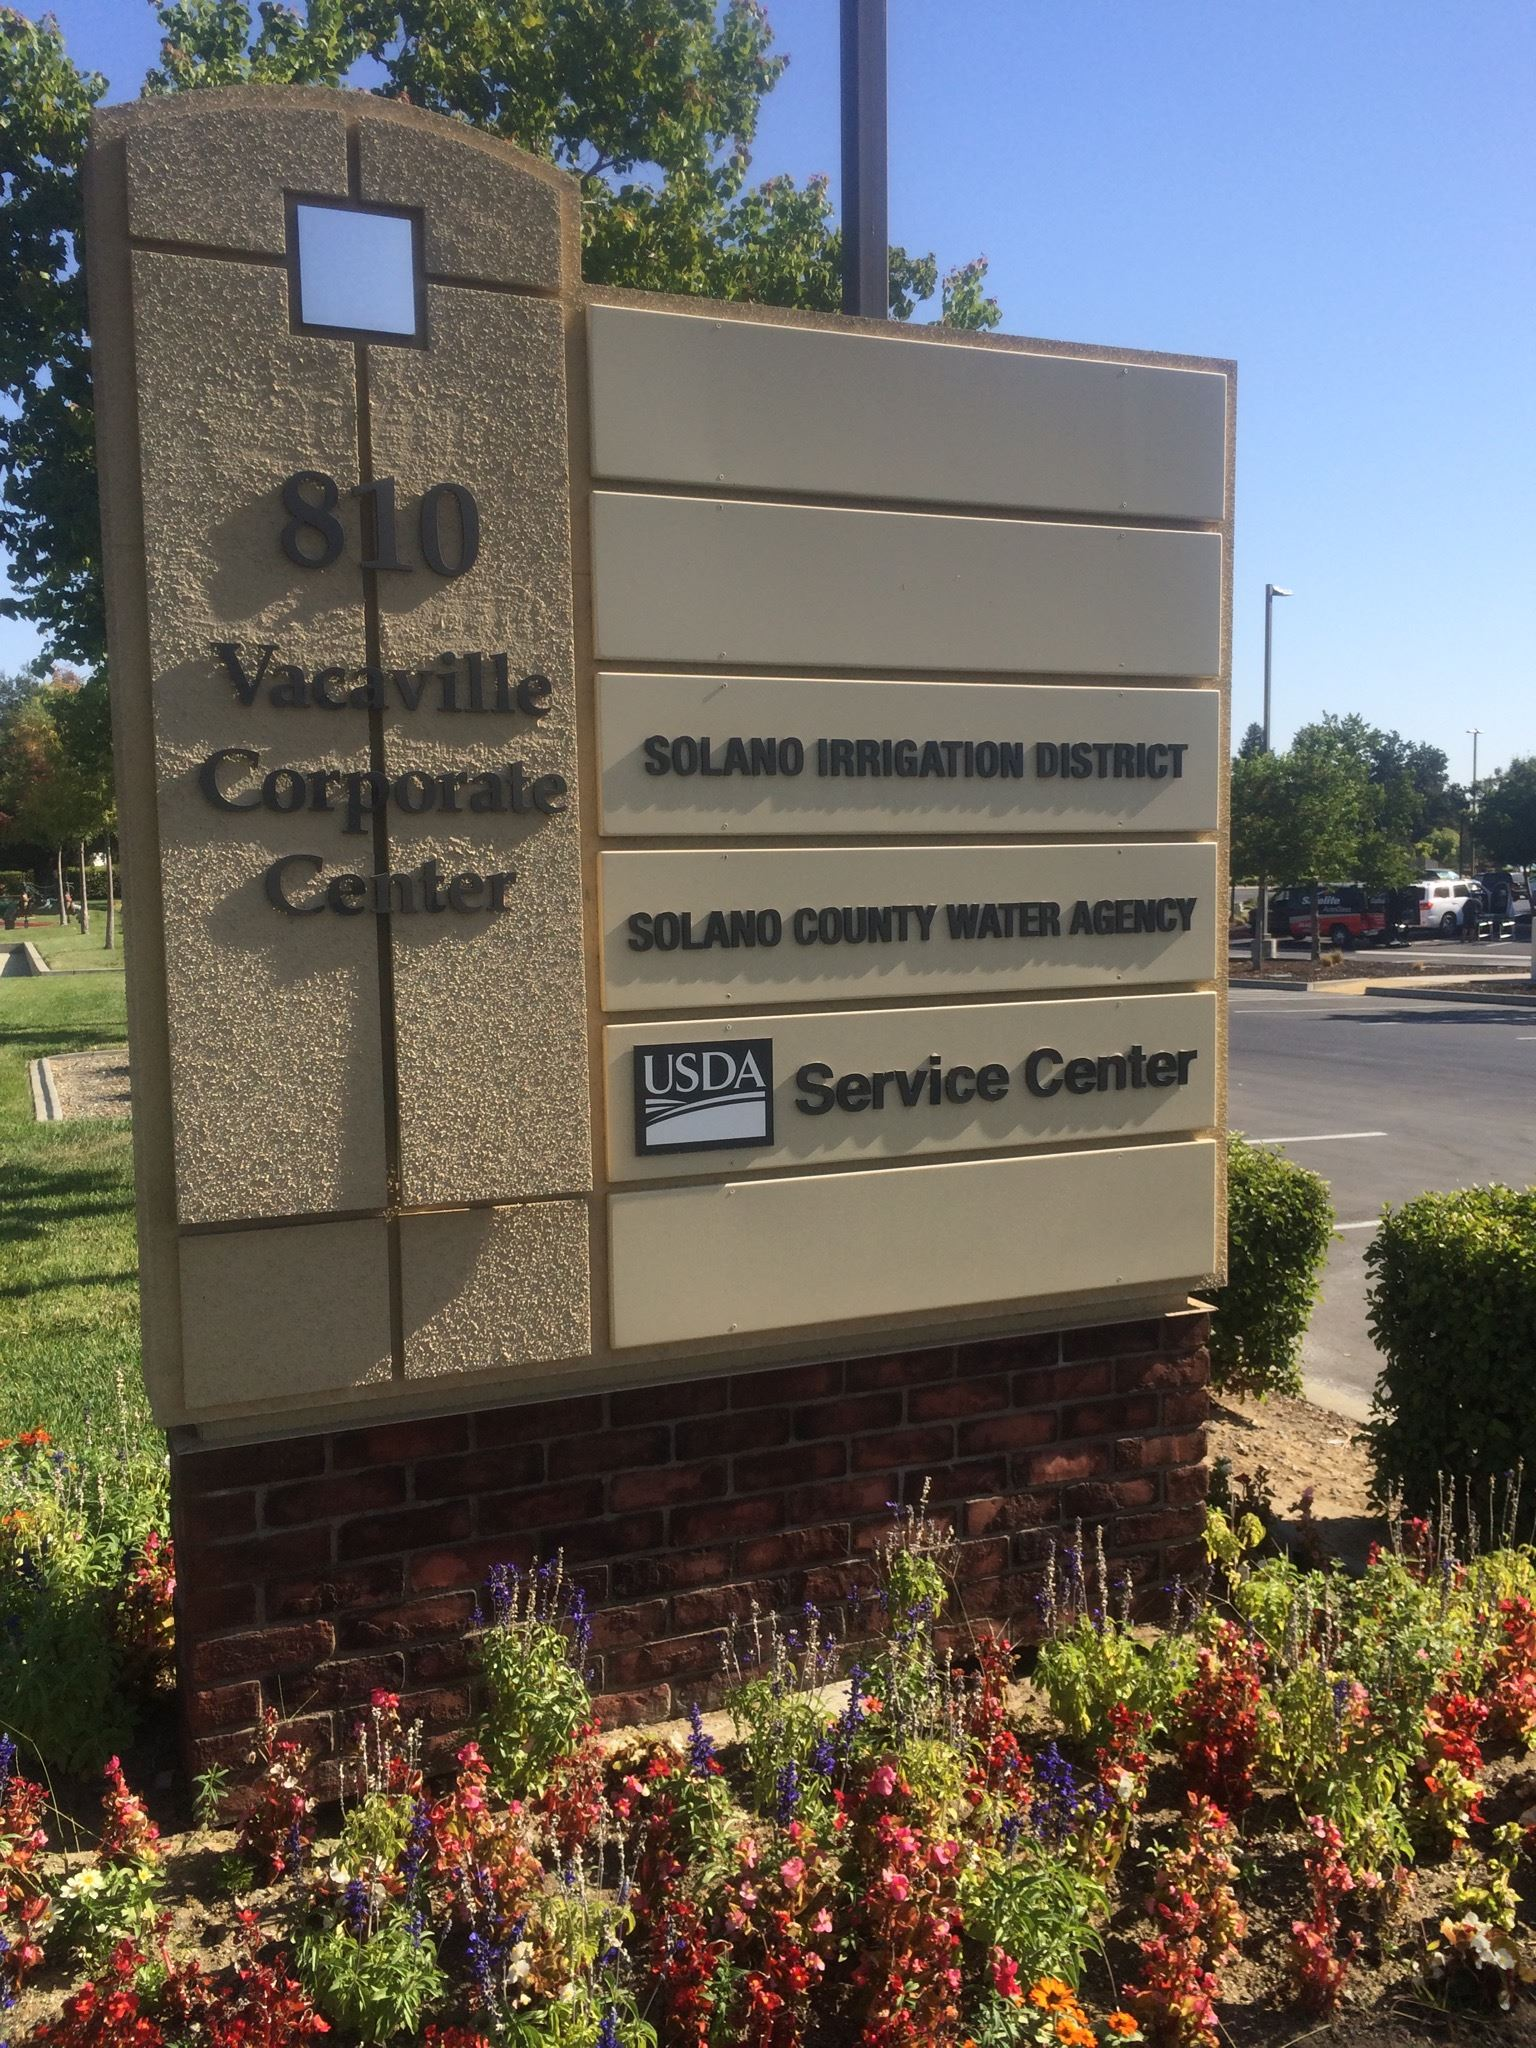 810 Vacaville Corporate Center sign